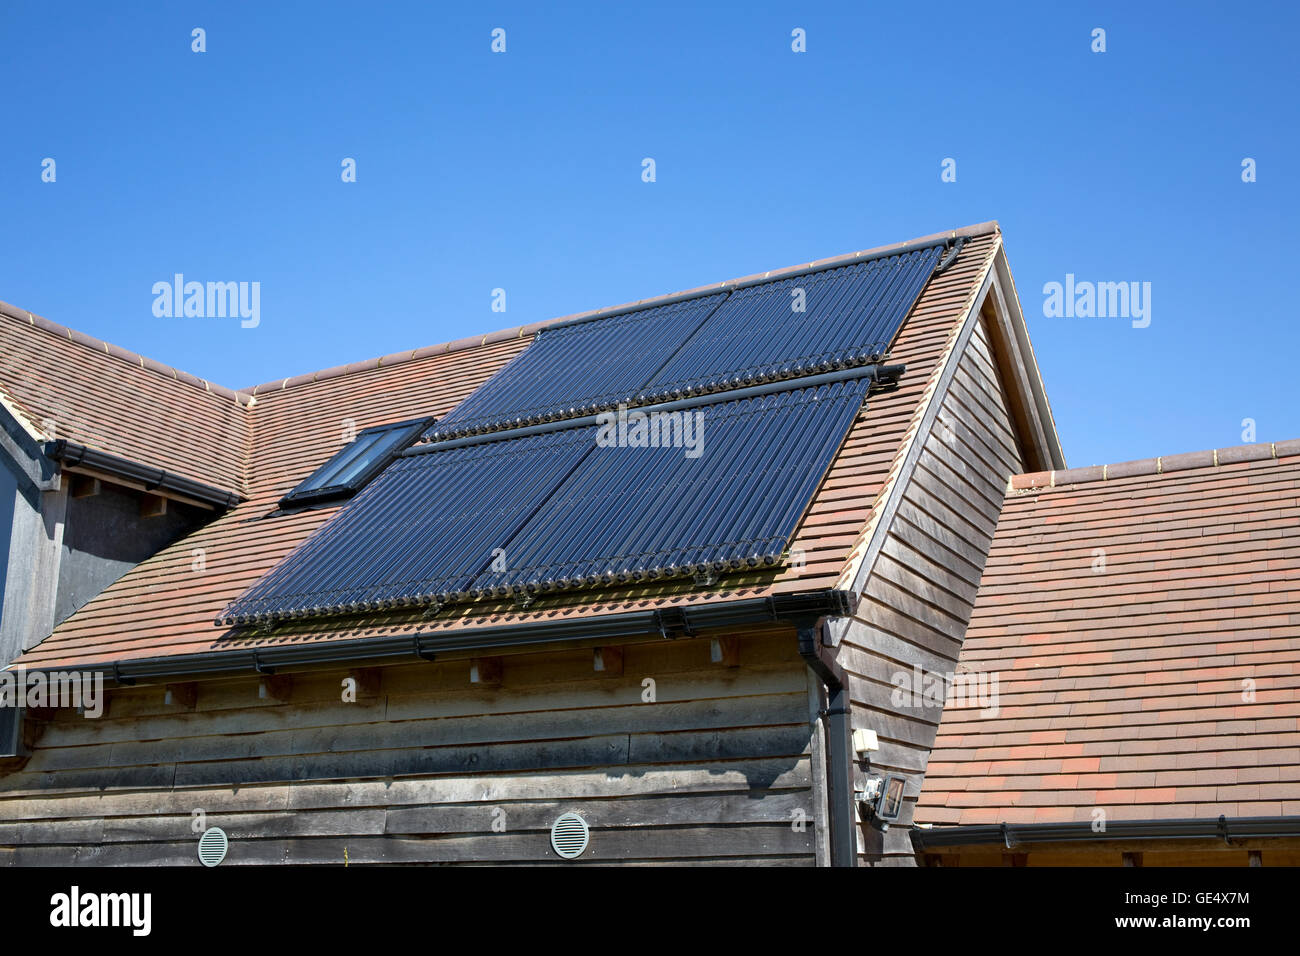 Evacuated tubes of solar thermal array Colemans Hill Farm Mickleton UK Stock Photo